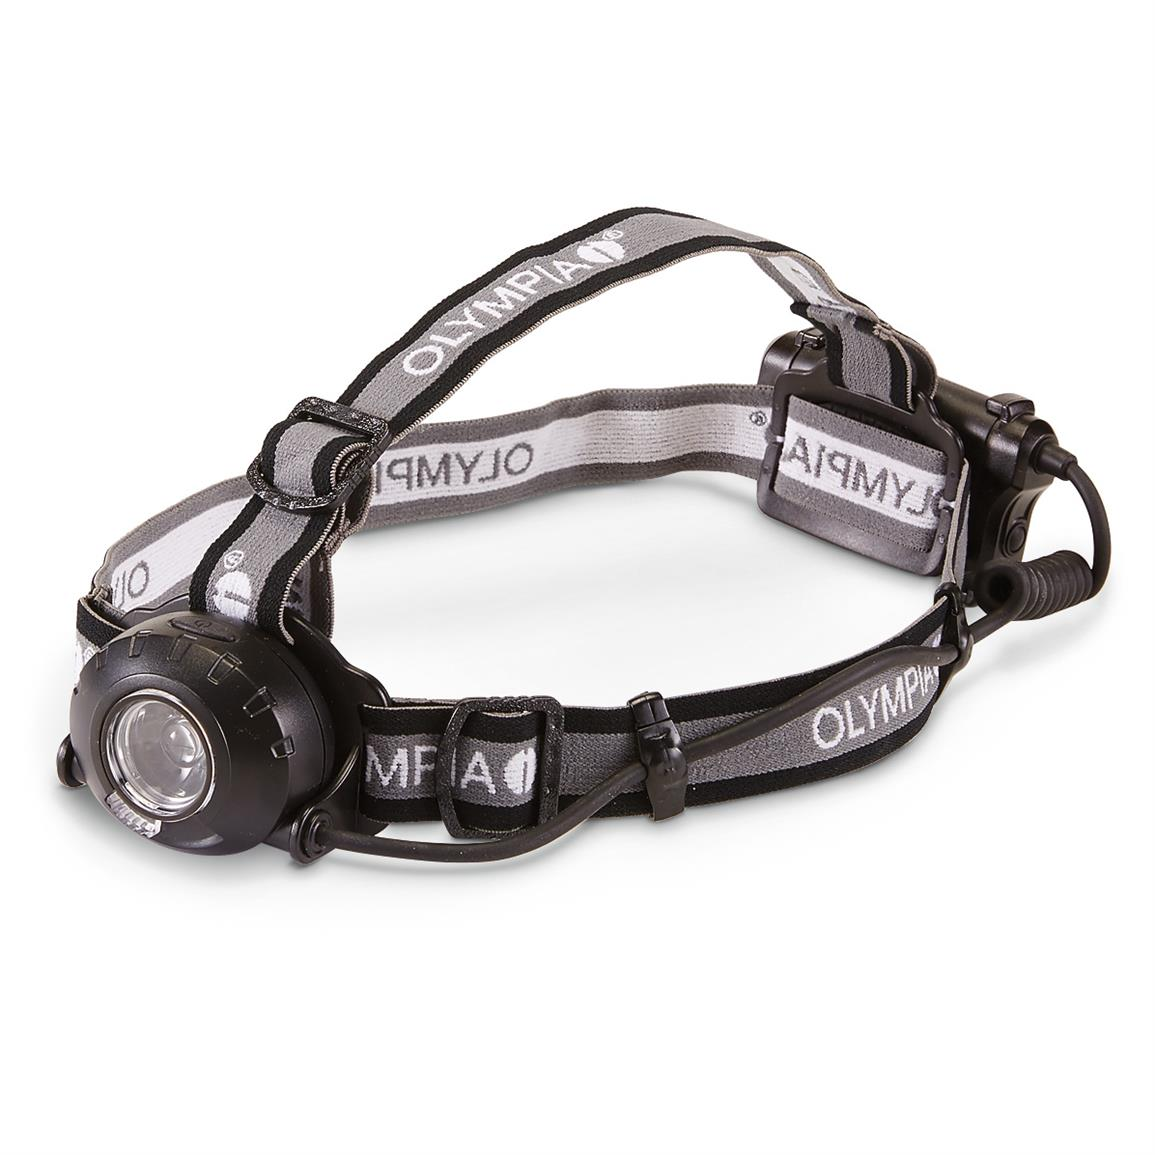 Olympia Explorer Series Adjustable Focus Headlamp, 230 Lumen